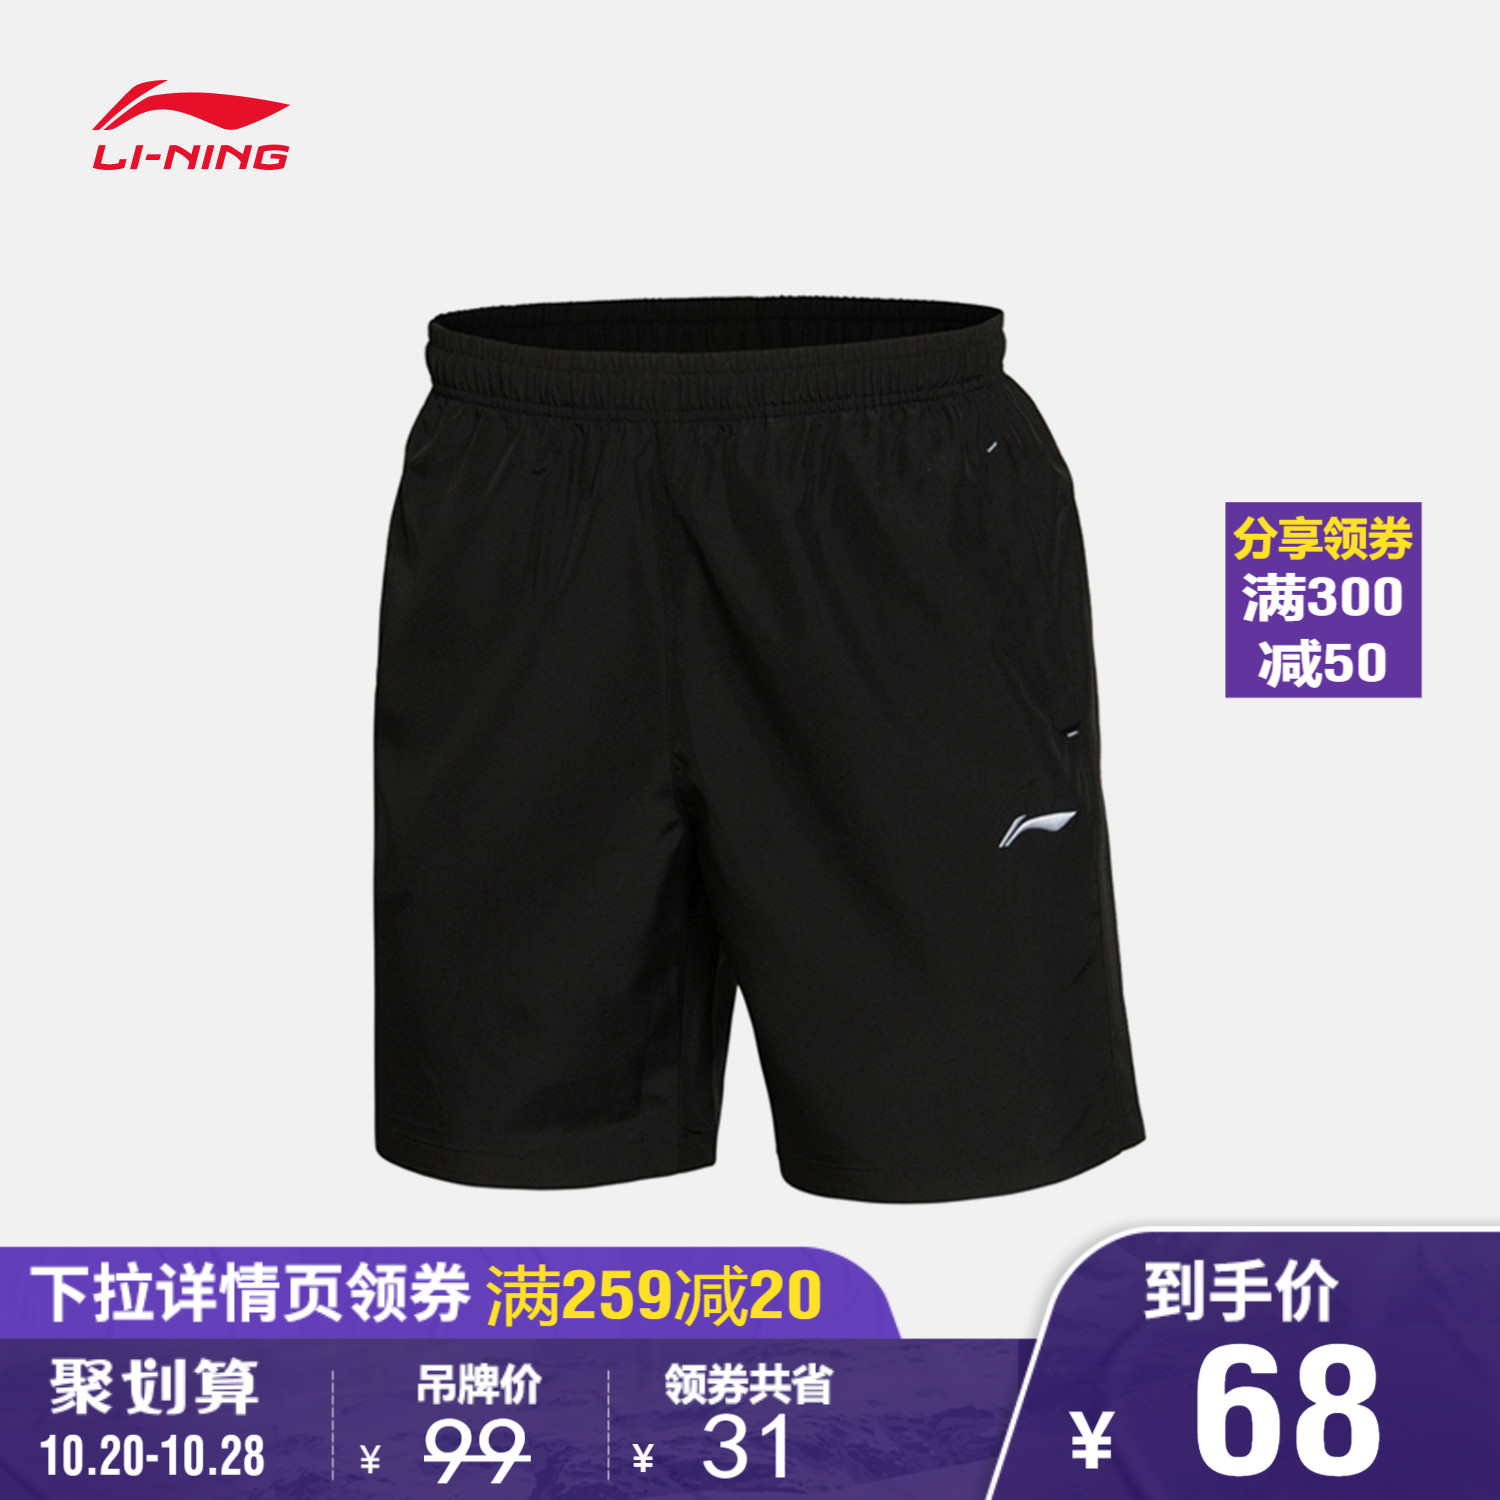 Li Ning sports shorts men's 2020 official website new training breathable loose summer ice silk men's sports shorts